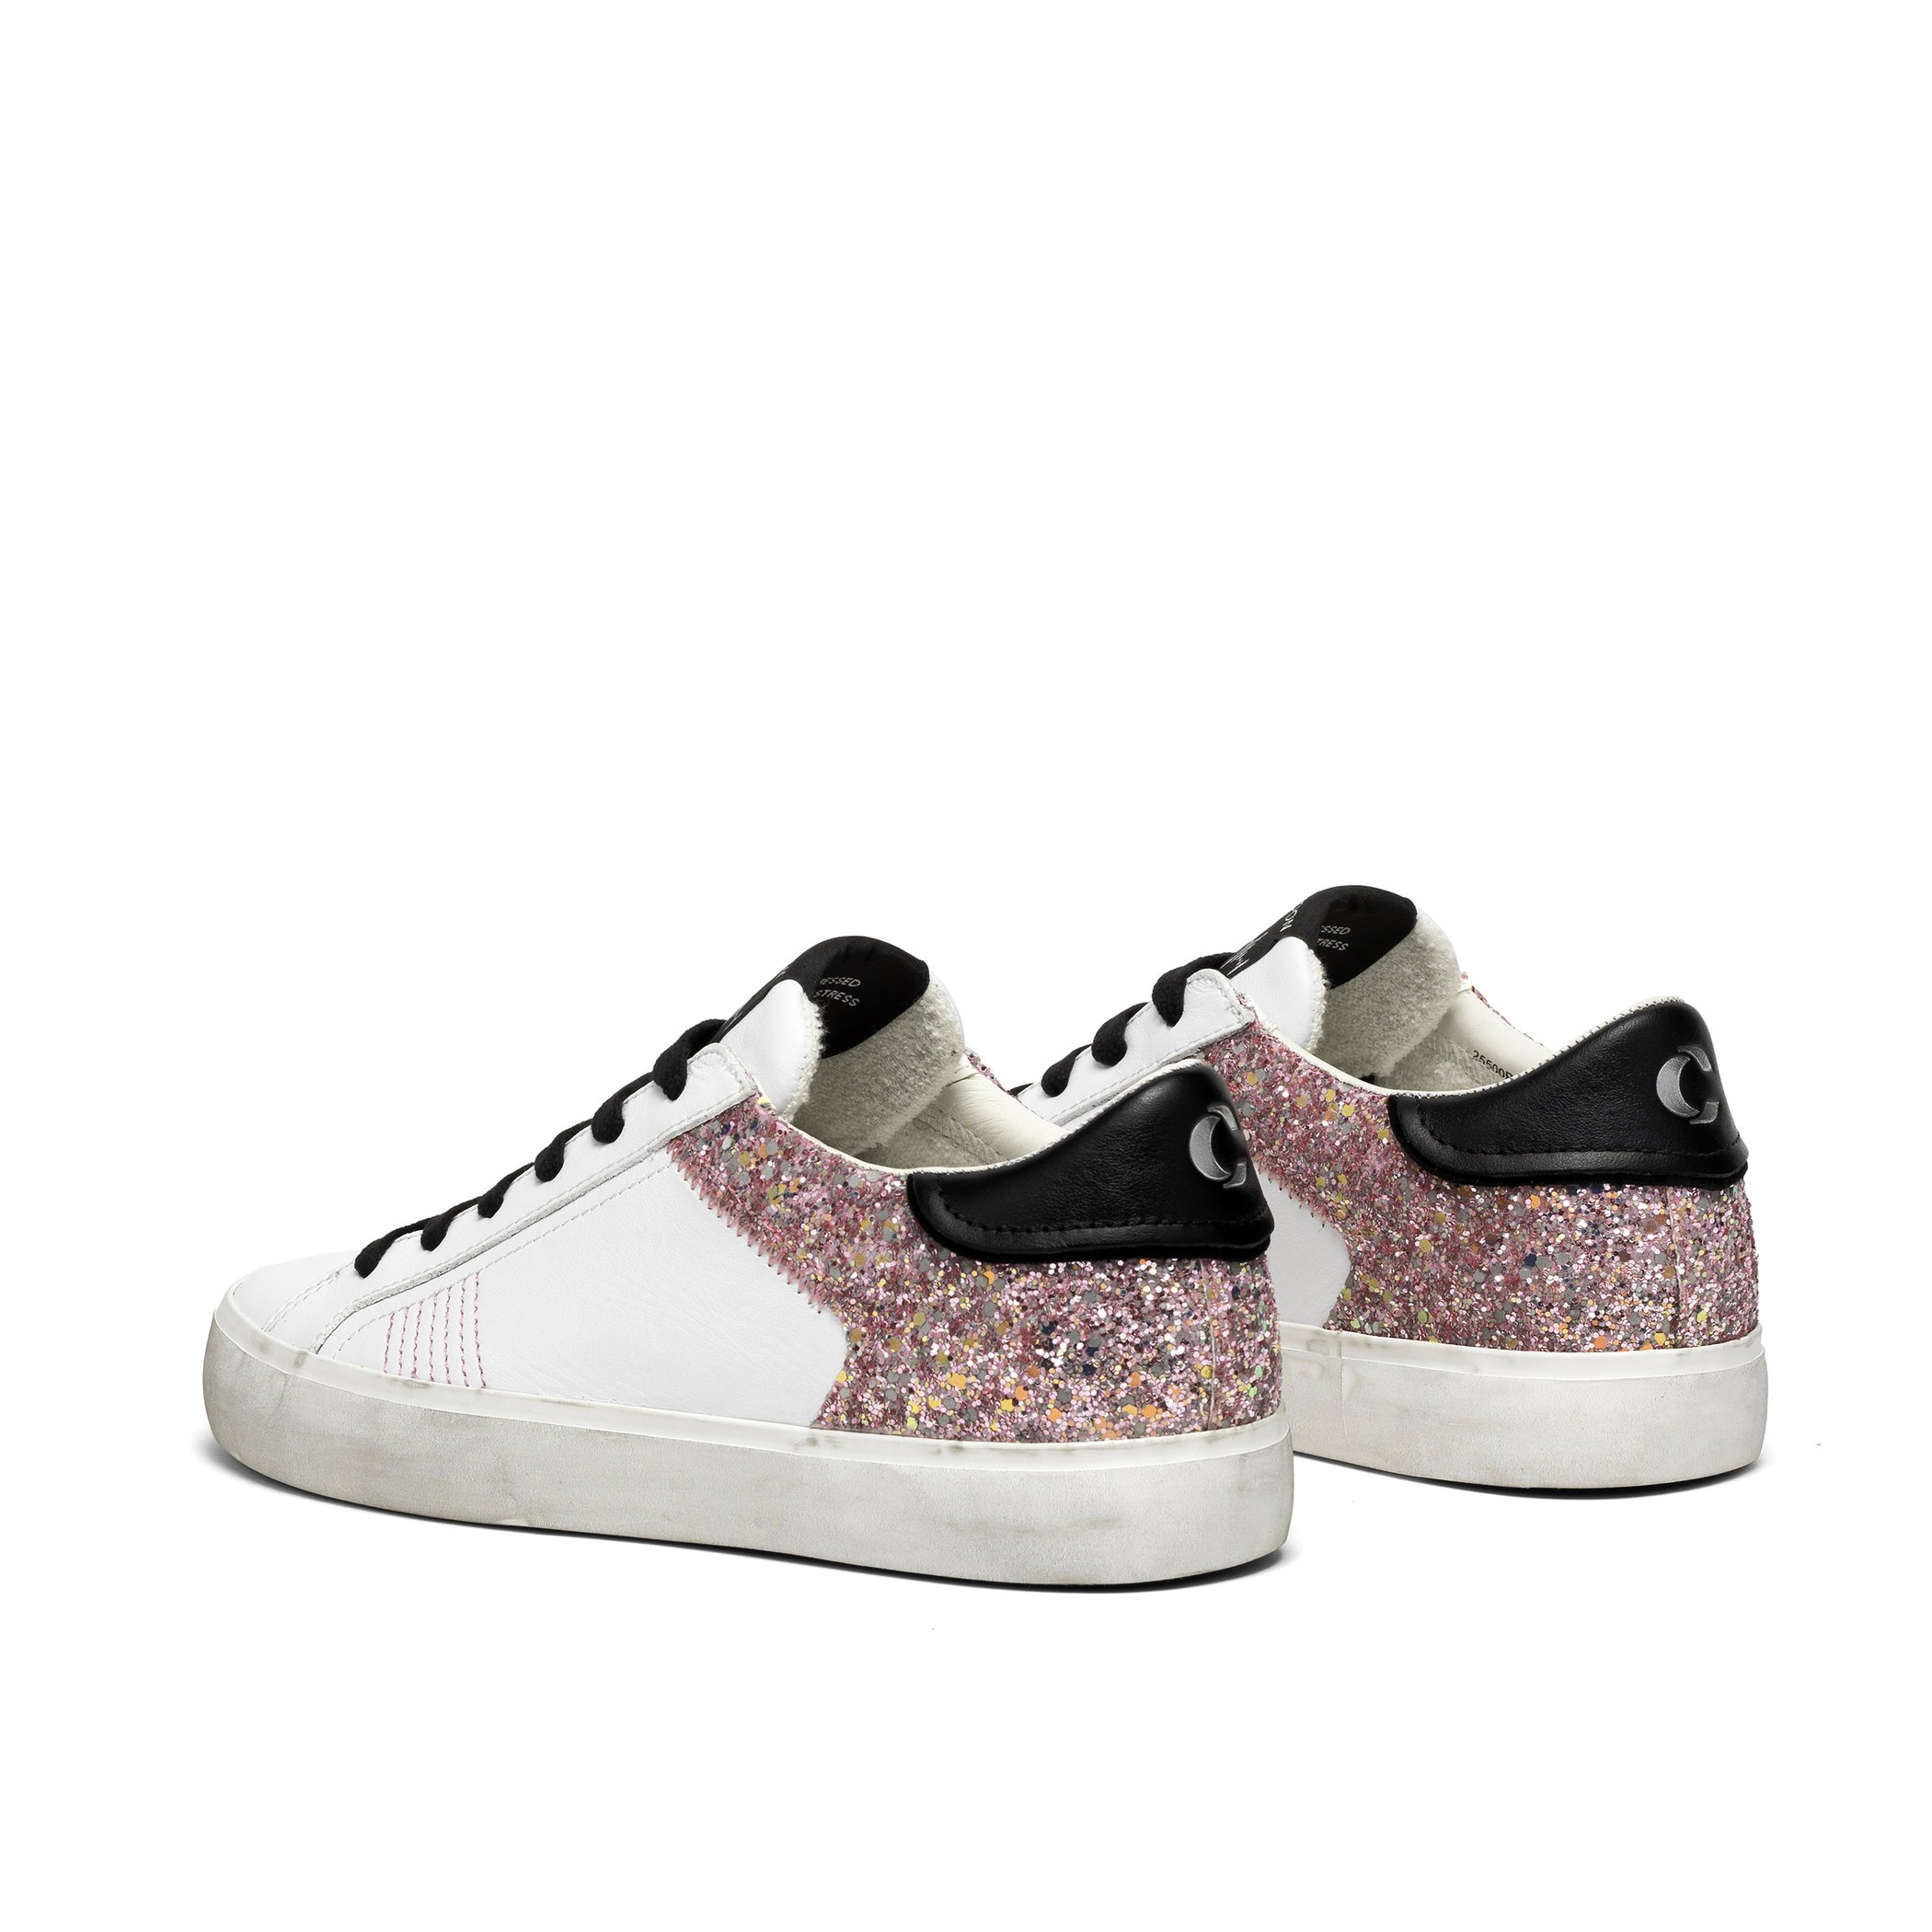 sneakers low top distressed glitter CRIME LONDON | Sneakers | 25500PP3B10